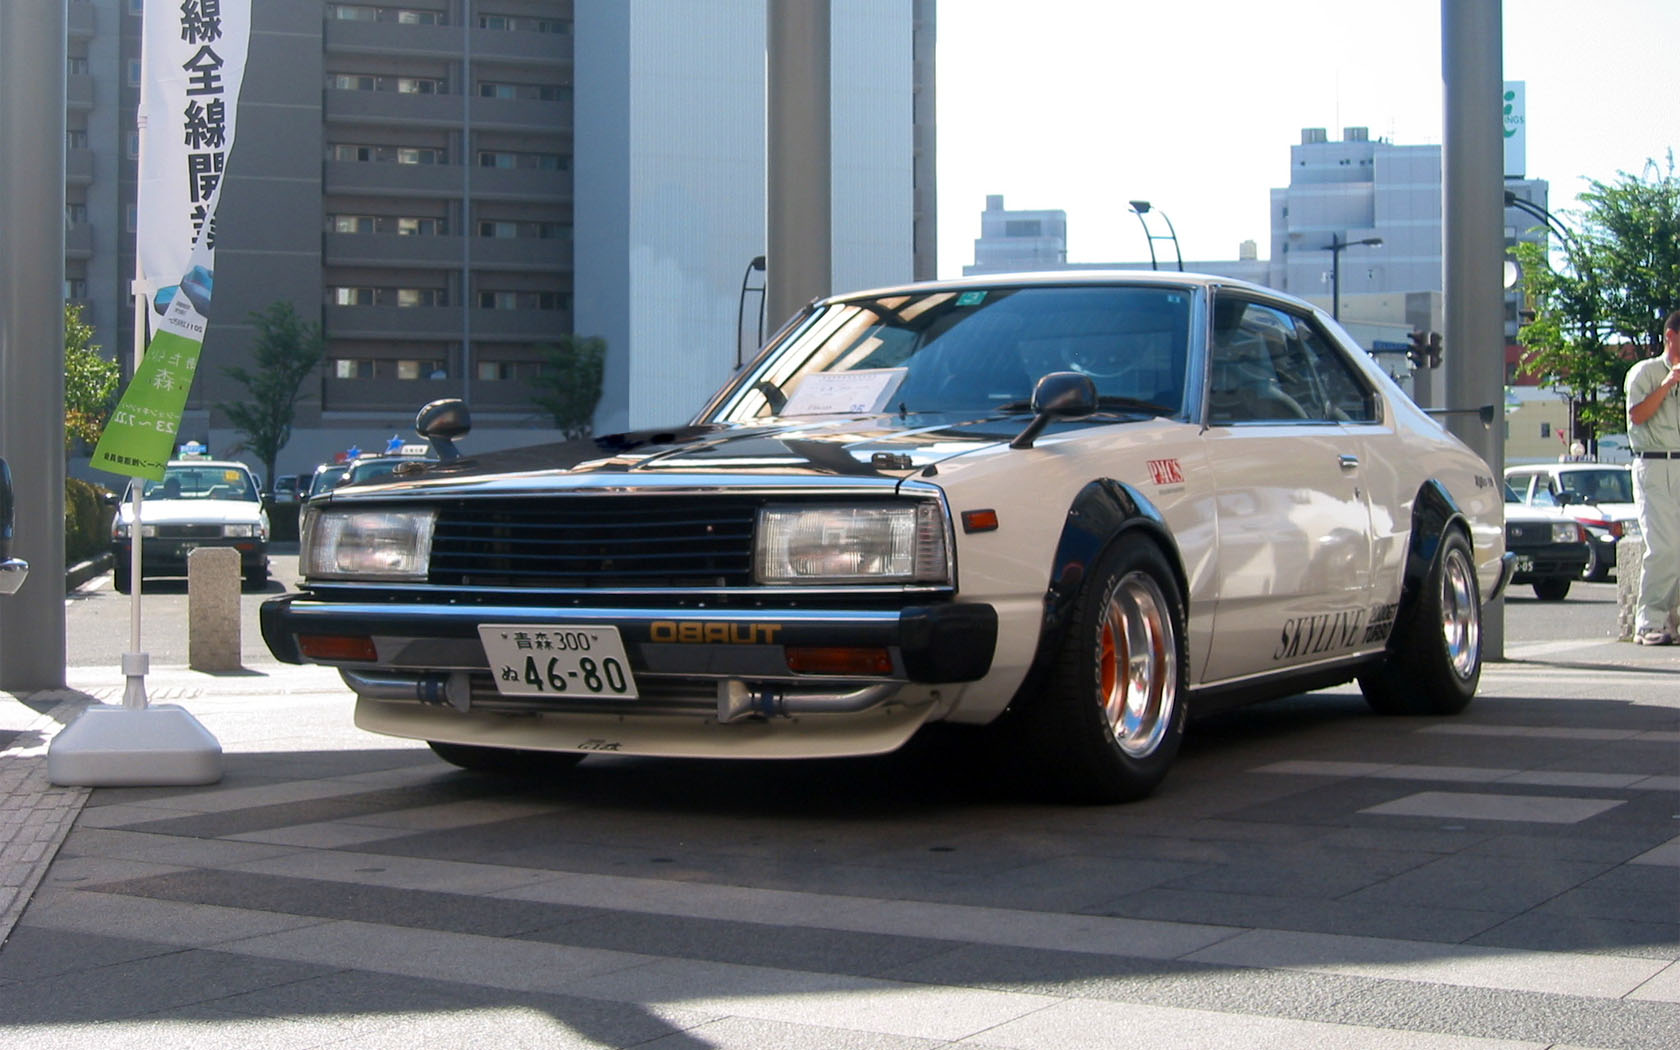 Nissan Skyline C211 GT-EX turbo